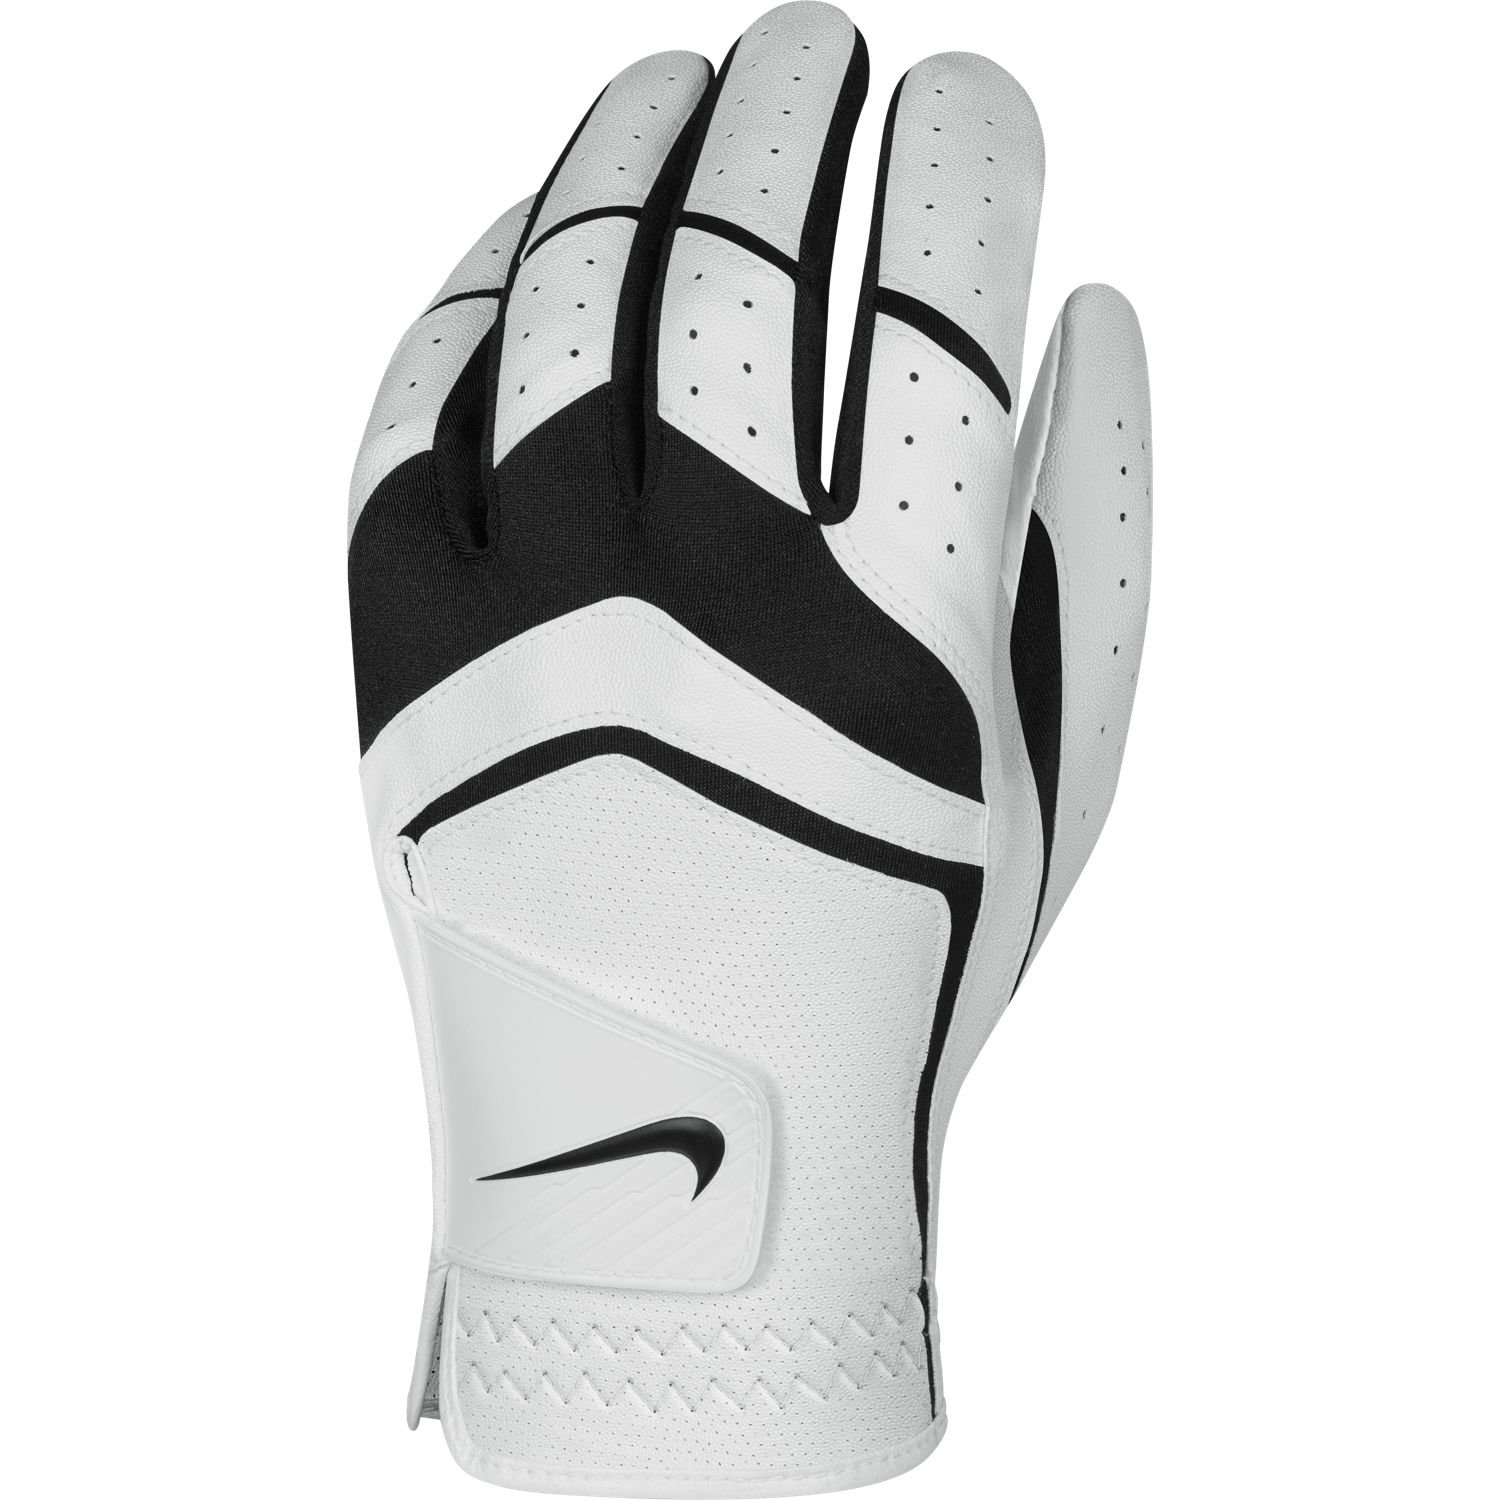 Nike Men's Dura Feel Golf Glove (White), XX-Large, Left Hand by Nike